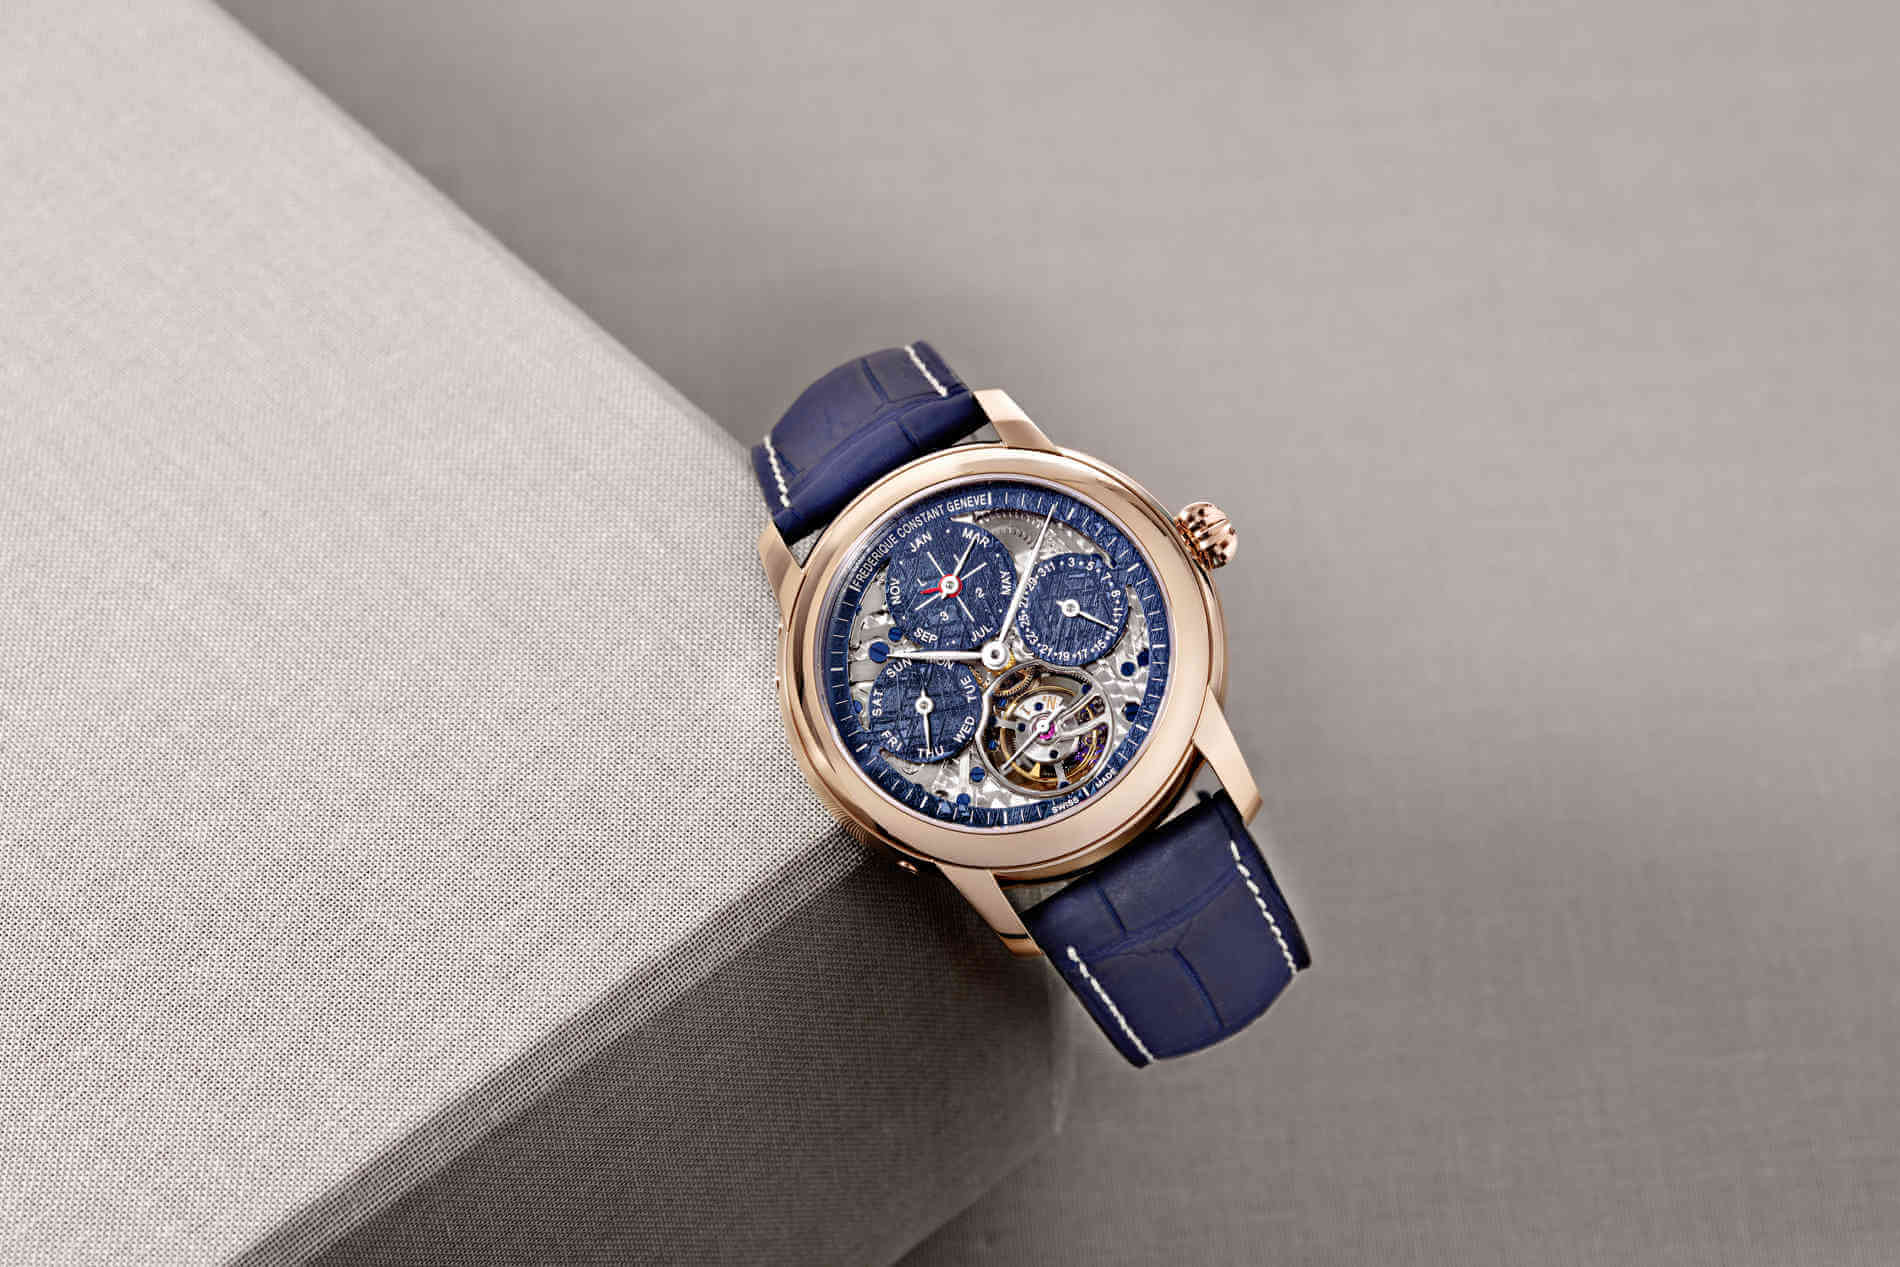 Frederique Constant Meteorite Tourbillon Perpetual Calendar Manufacture only watch